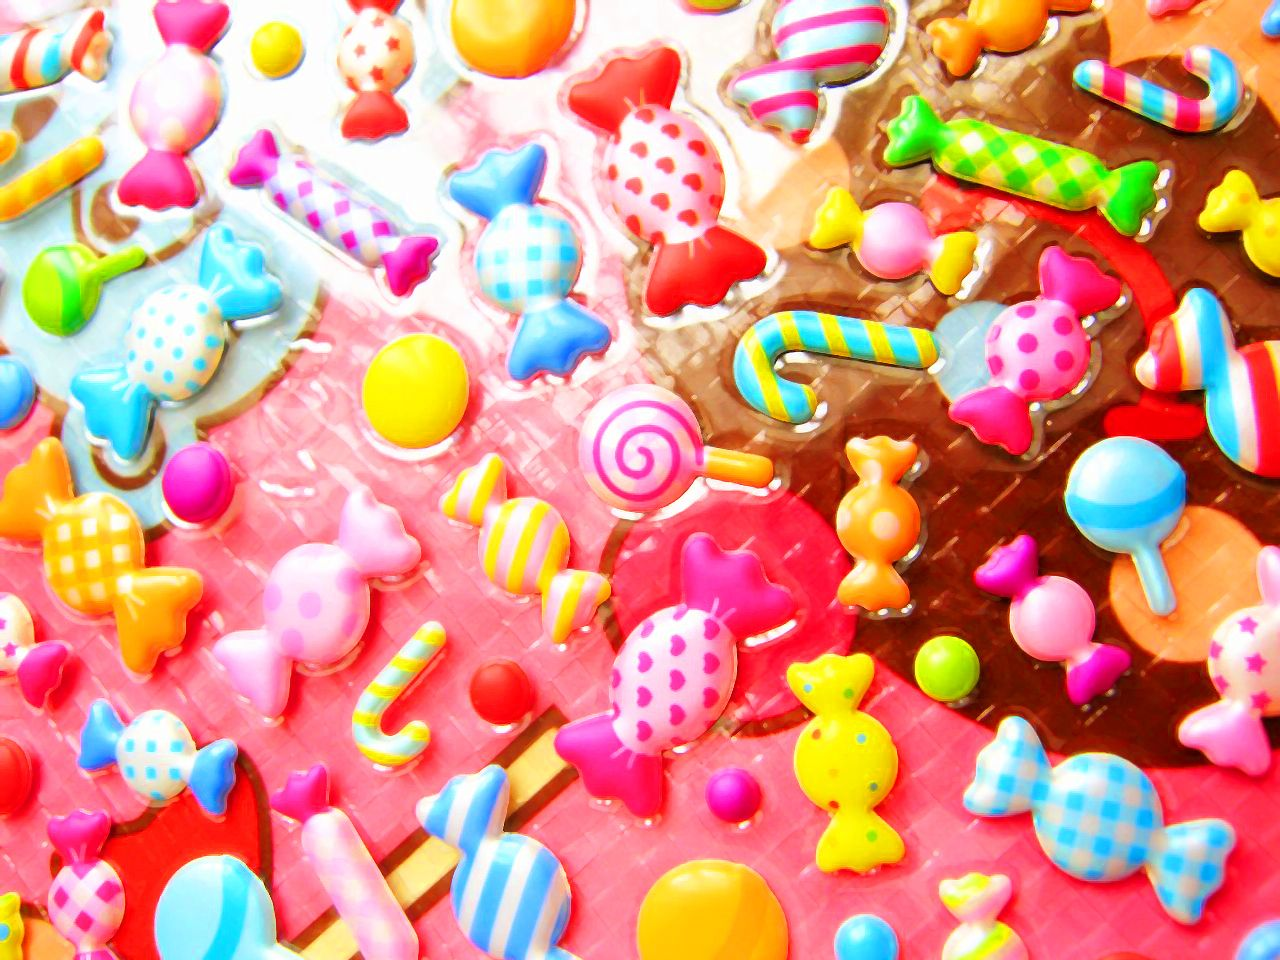 Cute Candy Wallpapers   Top Cute Candy Backgrounds 1280x960